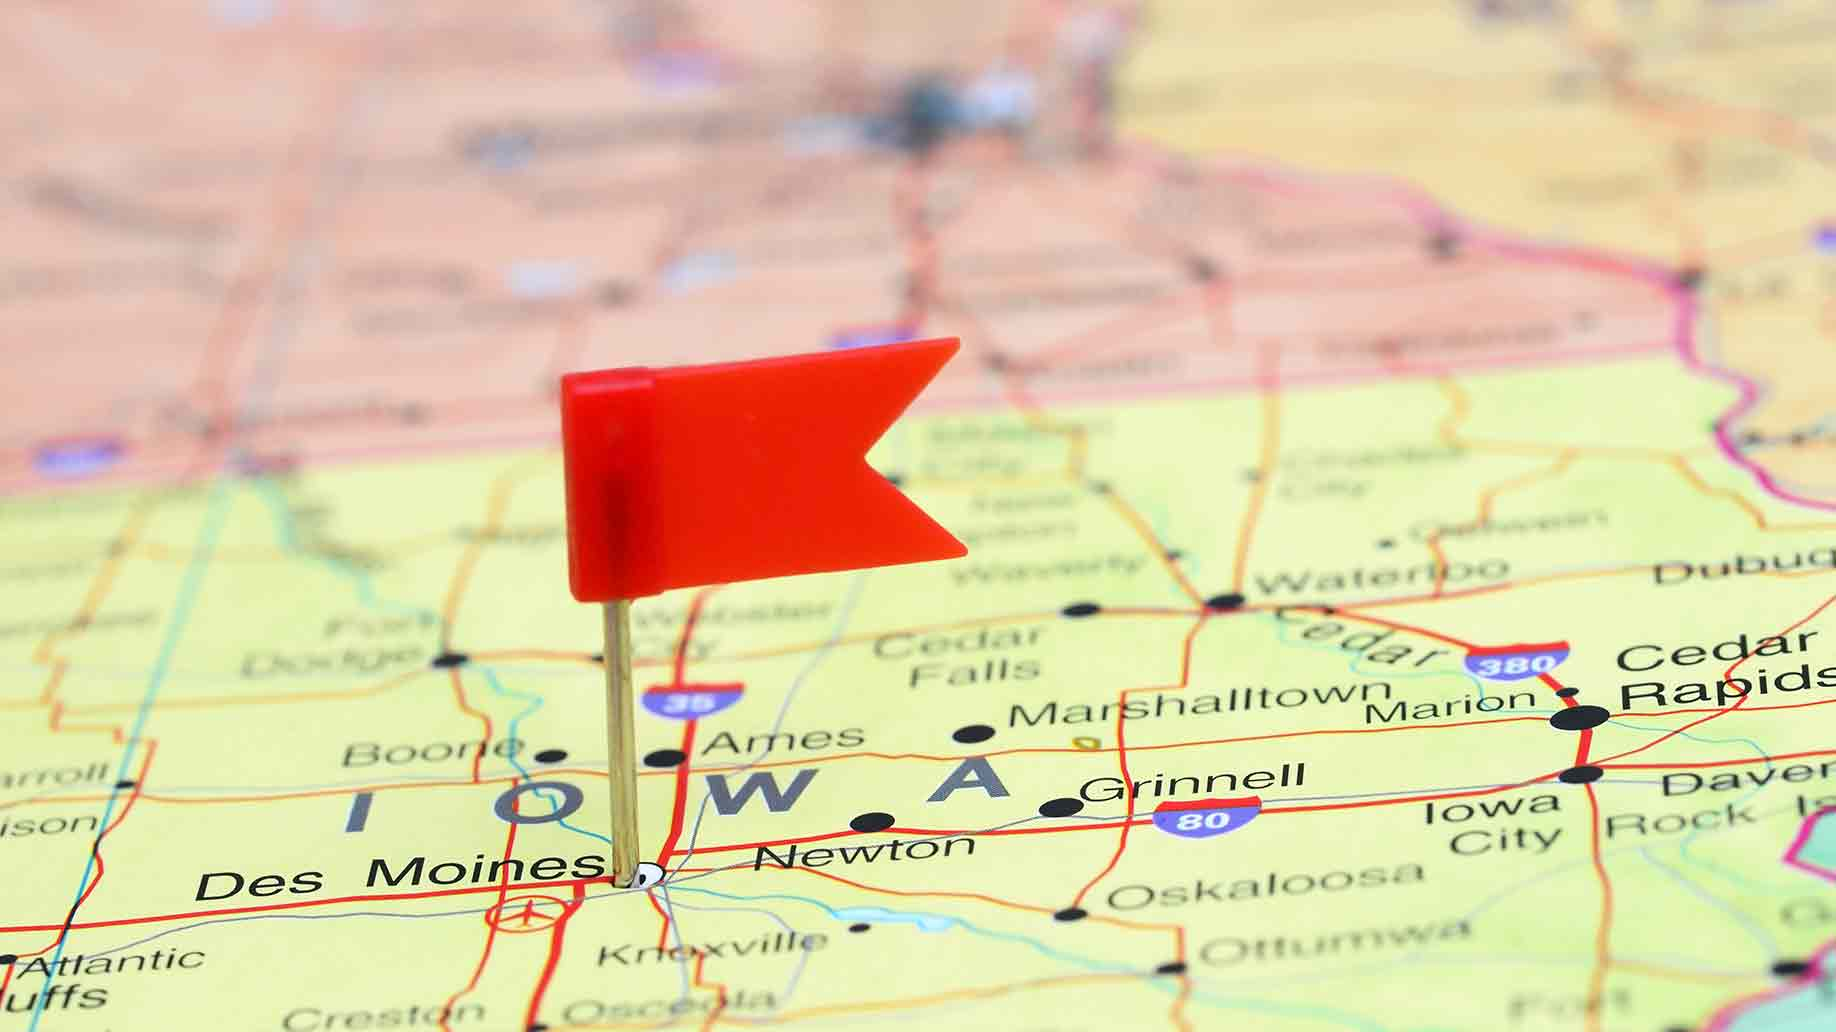 des moines pinned on usa map